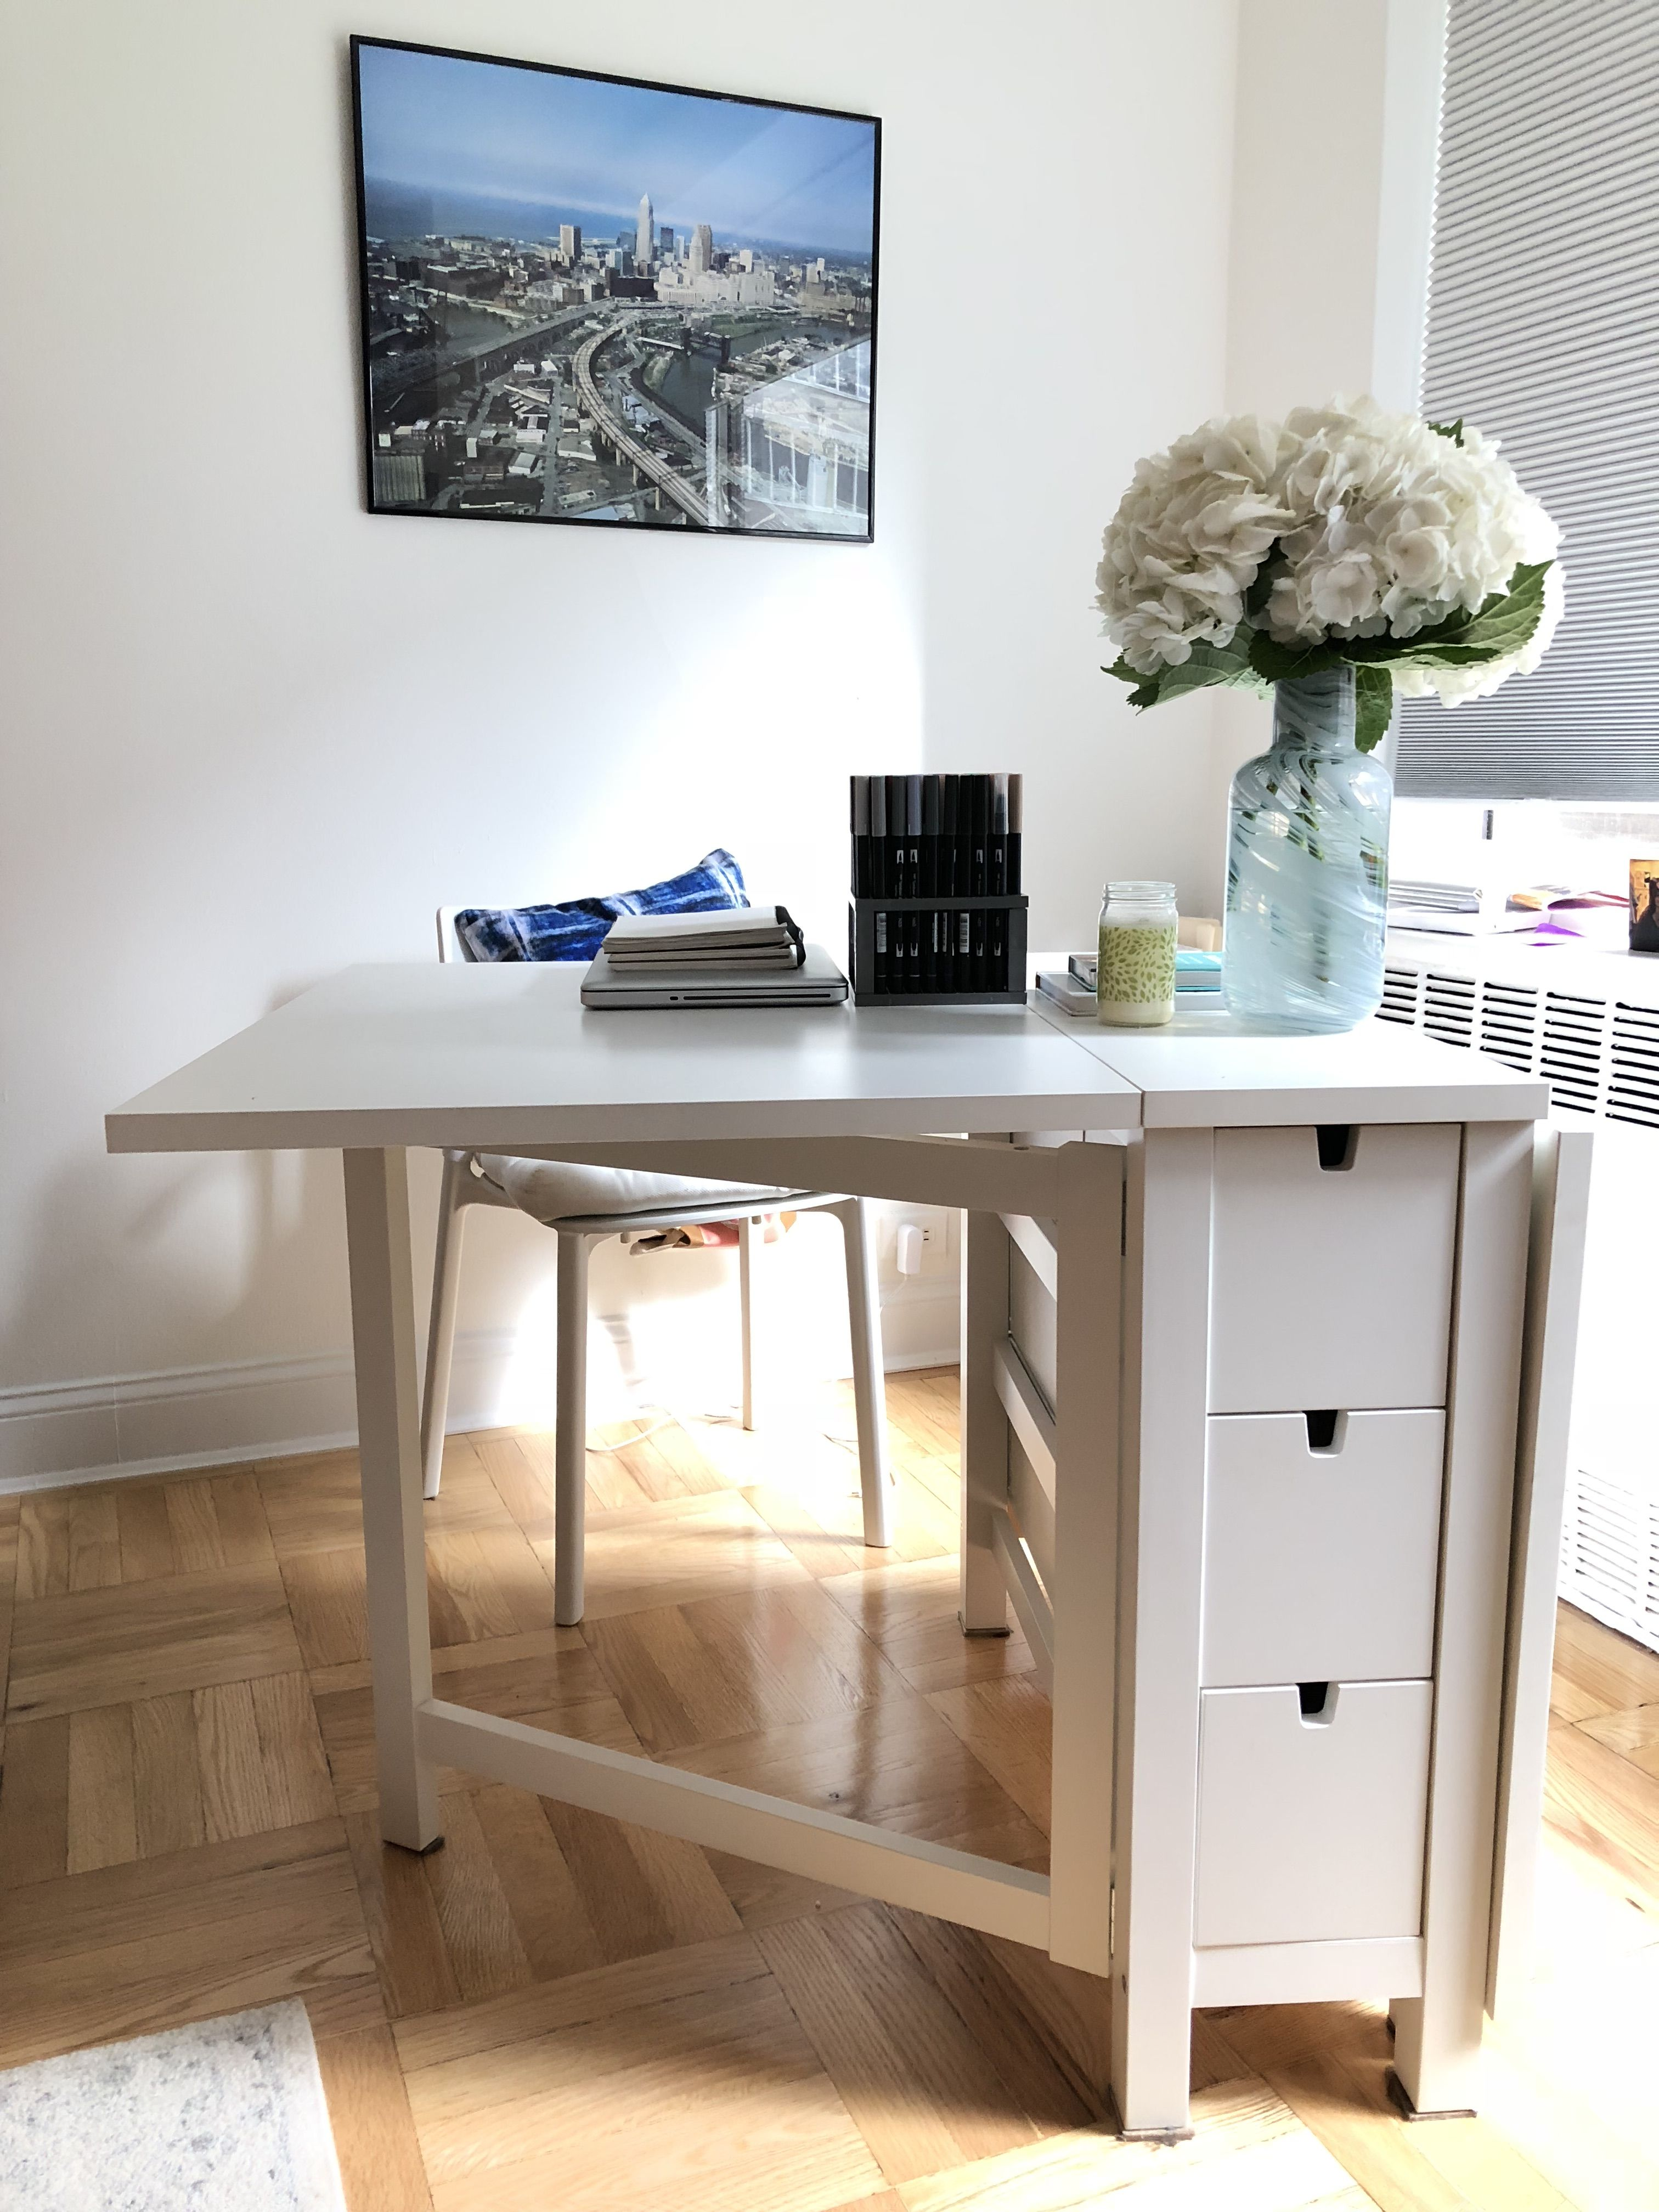 Ikea Norden Küche These 7 Things Made My New Apartment Feel So Much Bigger